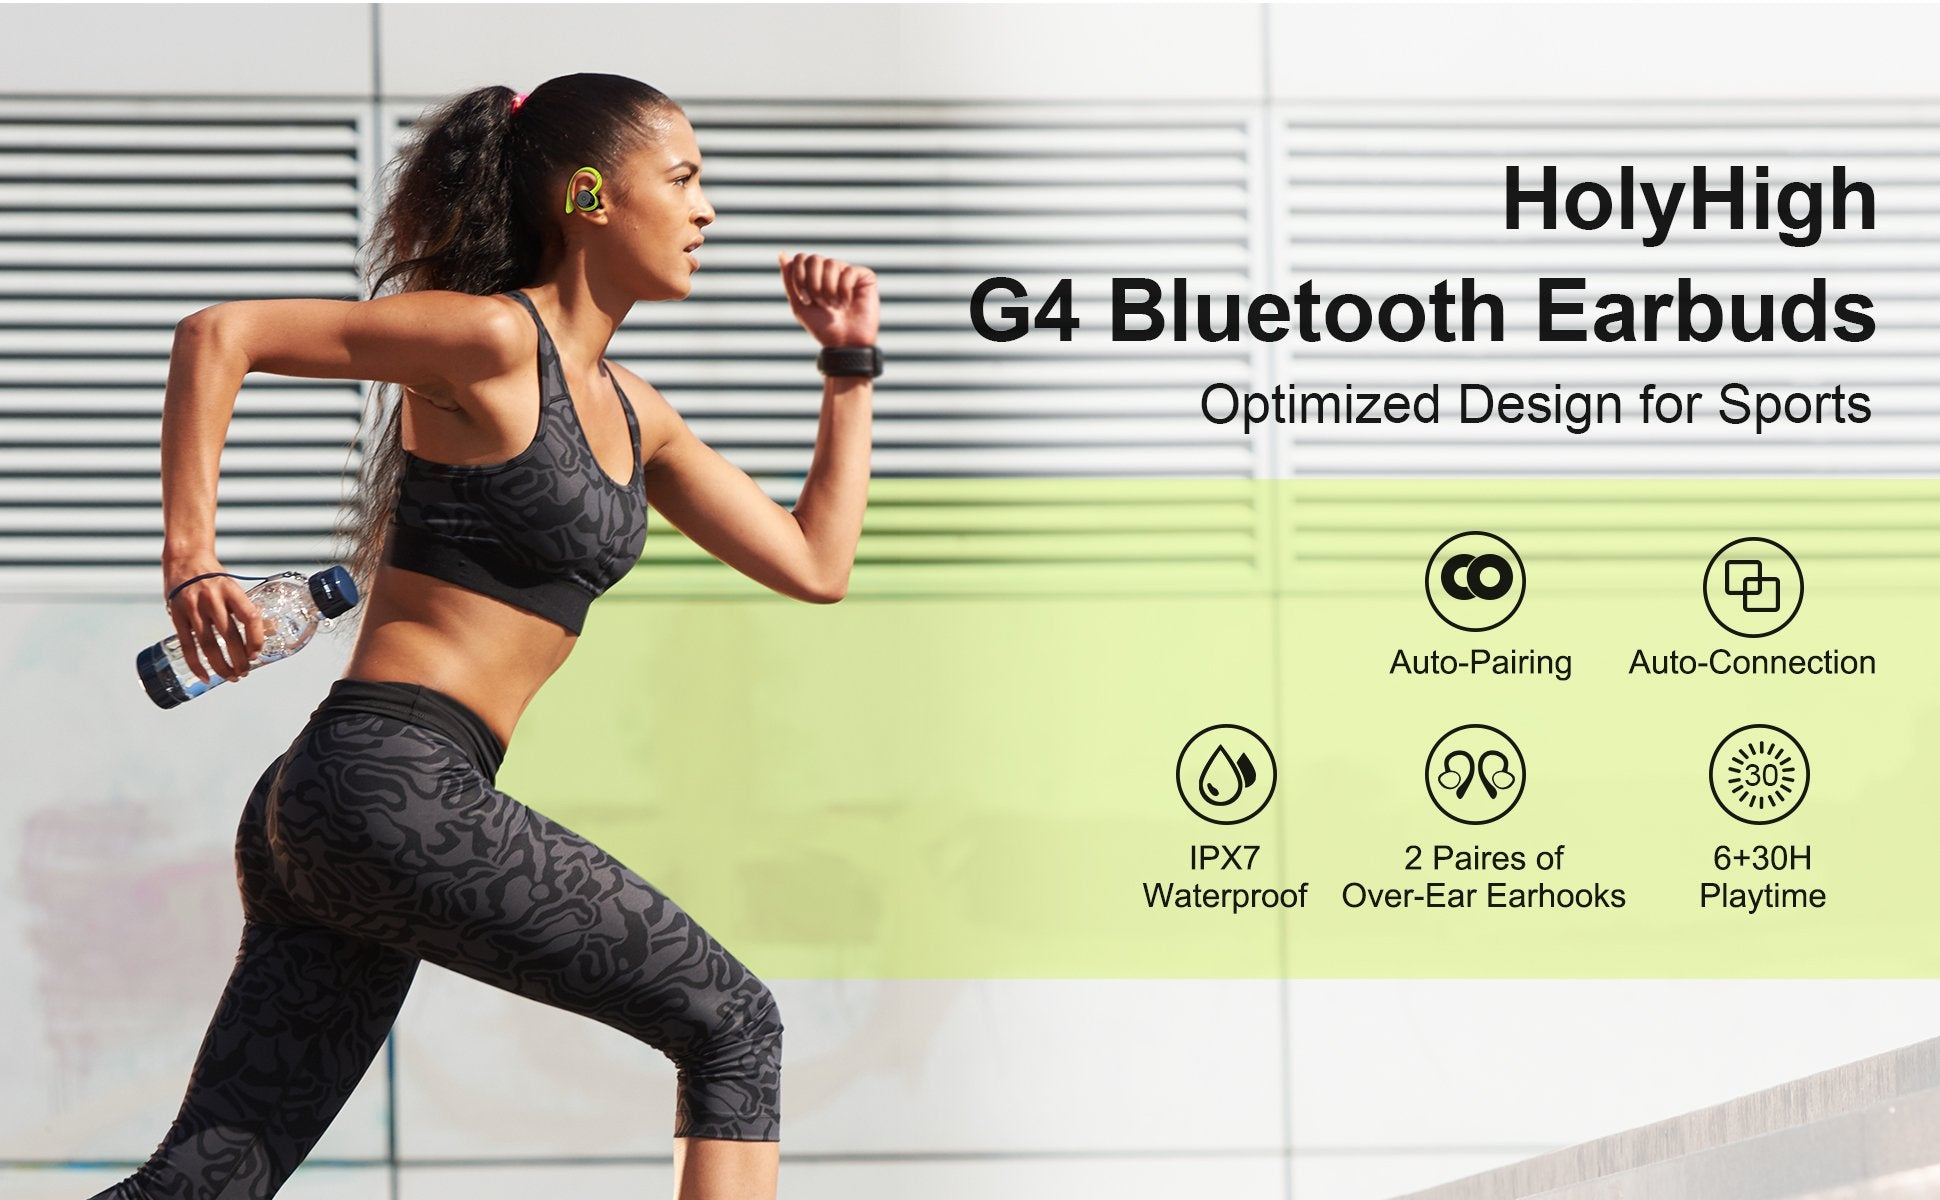 Holyhigh-Bluetooth-5-0-Wireless-Sports-Earbuds-G4-Details-2